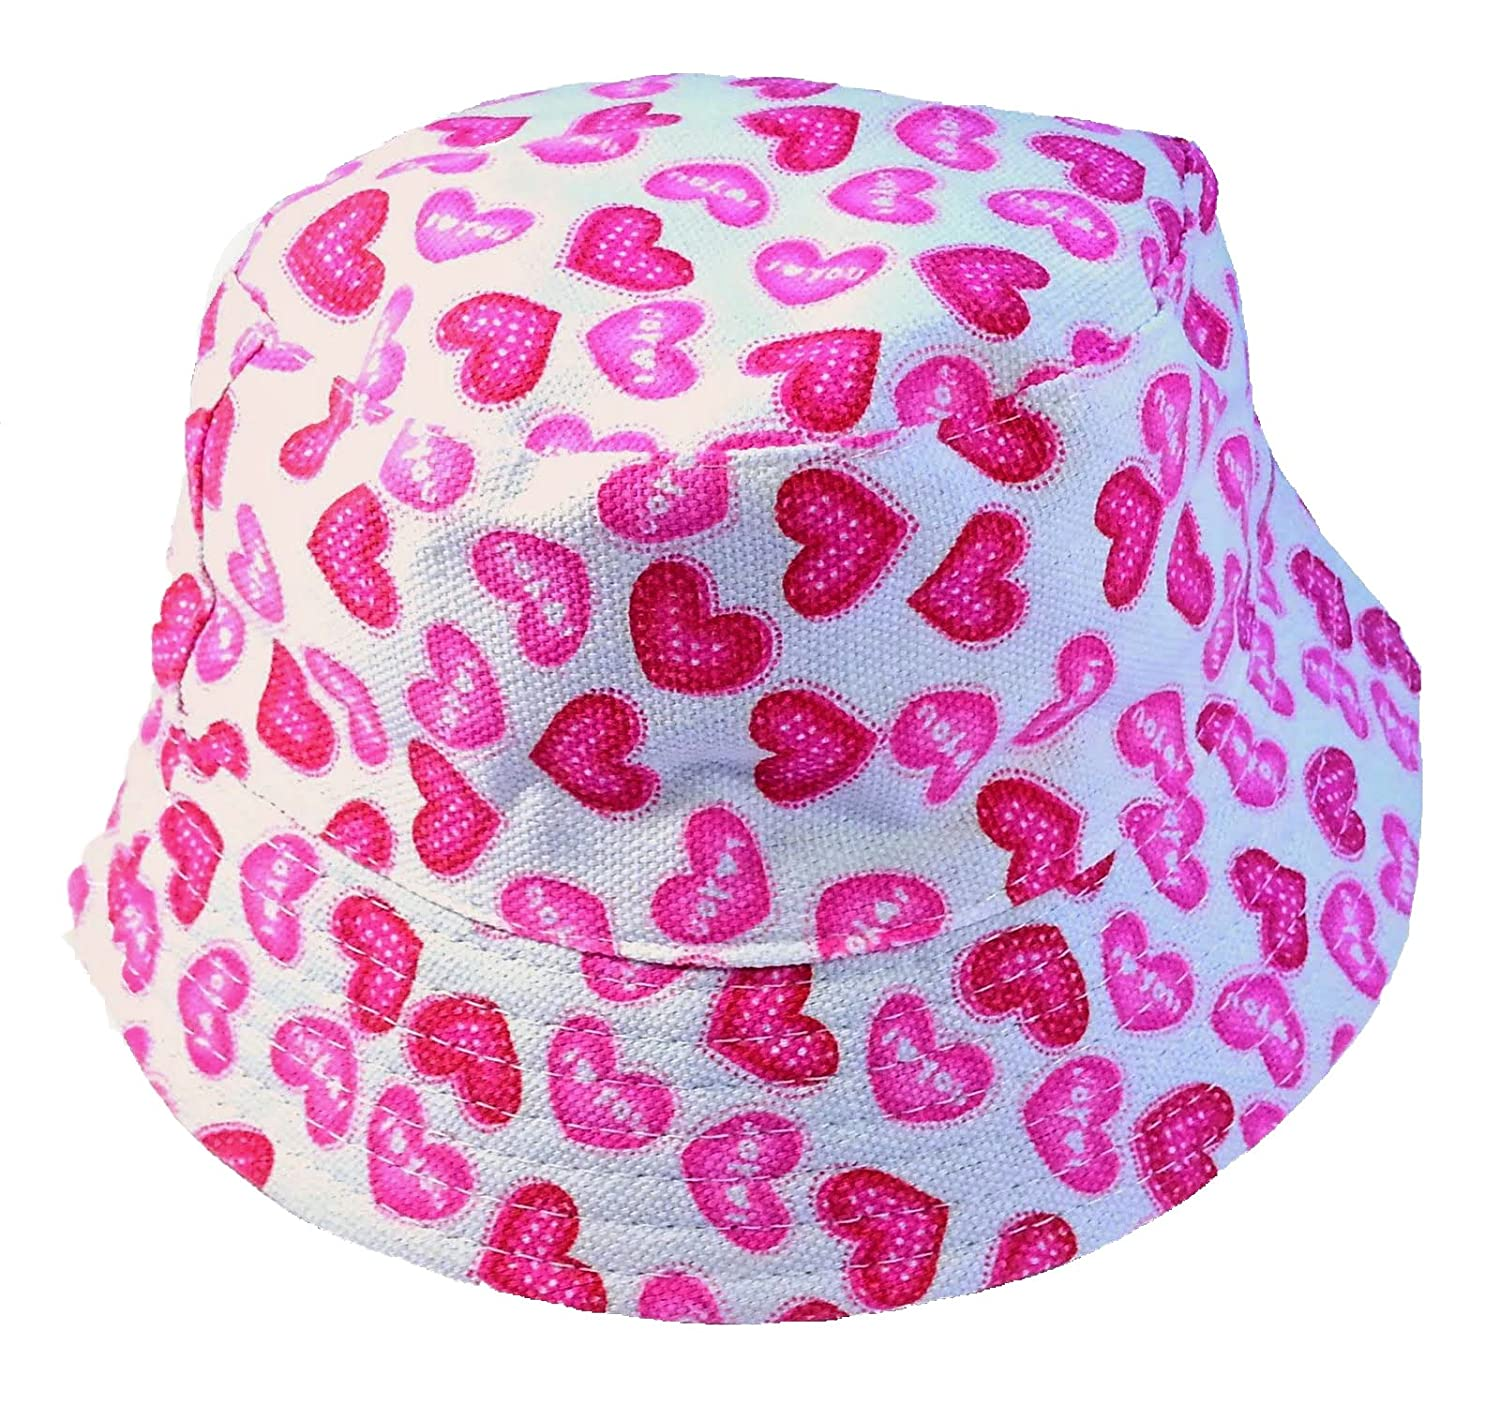 c083ad433 Kids Girls Canvas Cotton Sun Hat Bucket WHITE PINK HEARTS Age 3 4 5 6